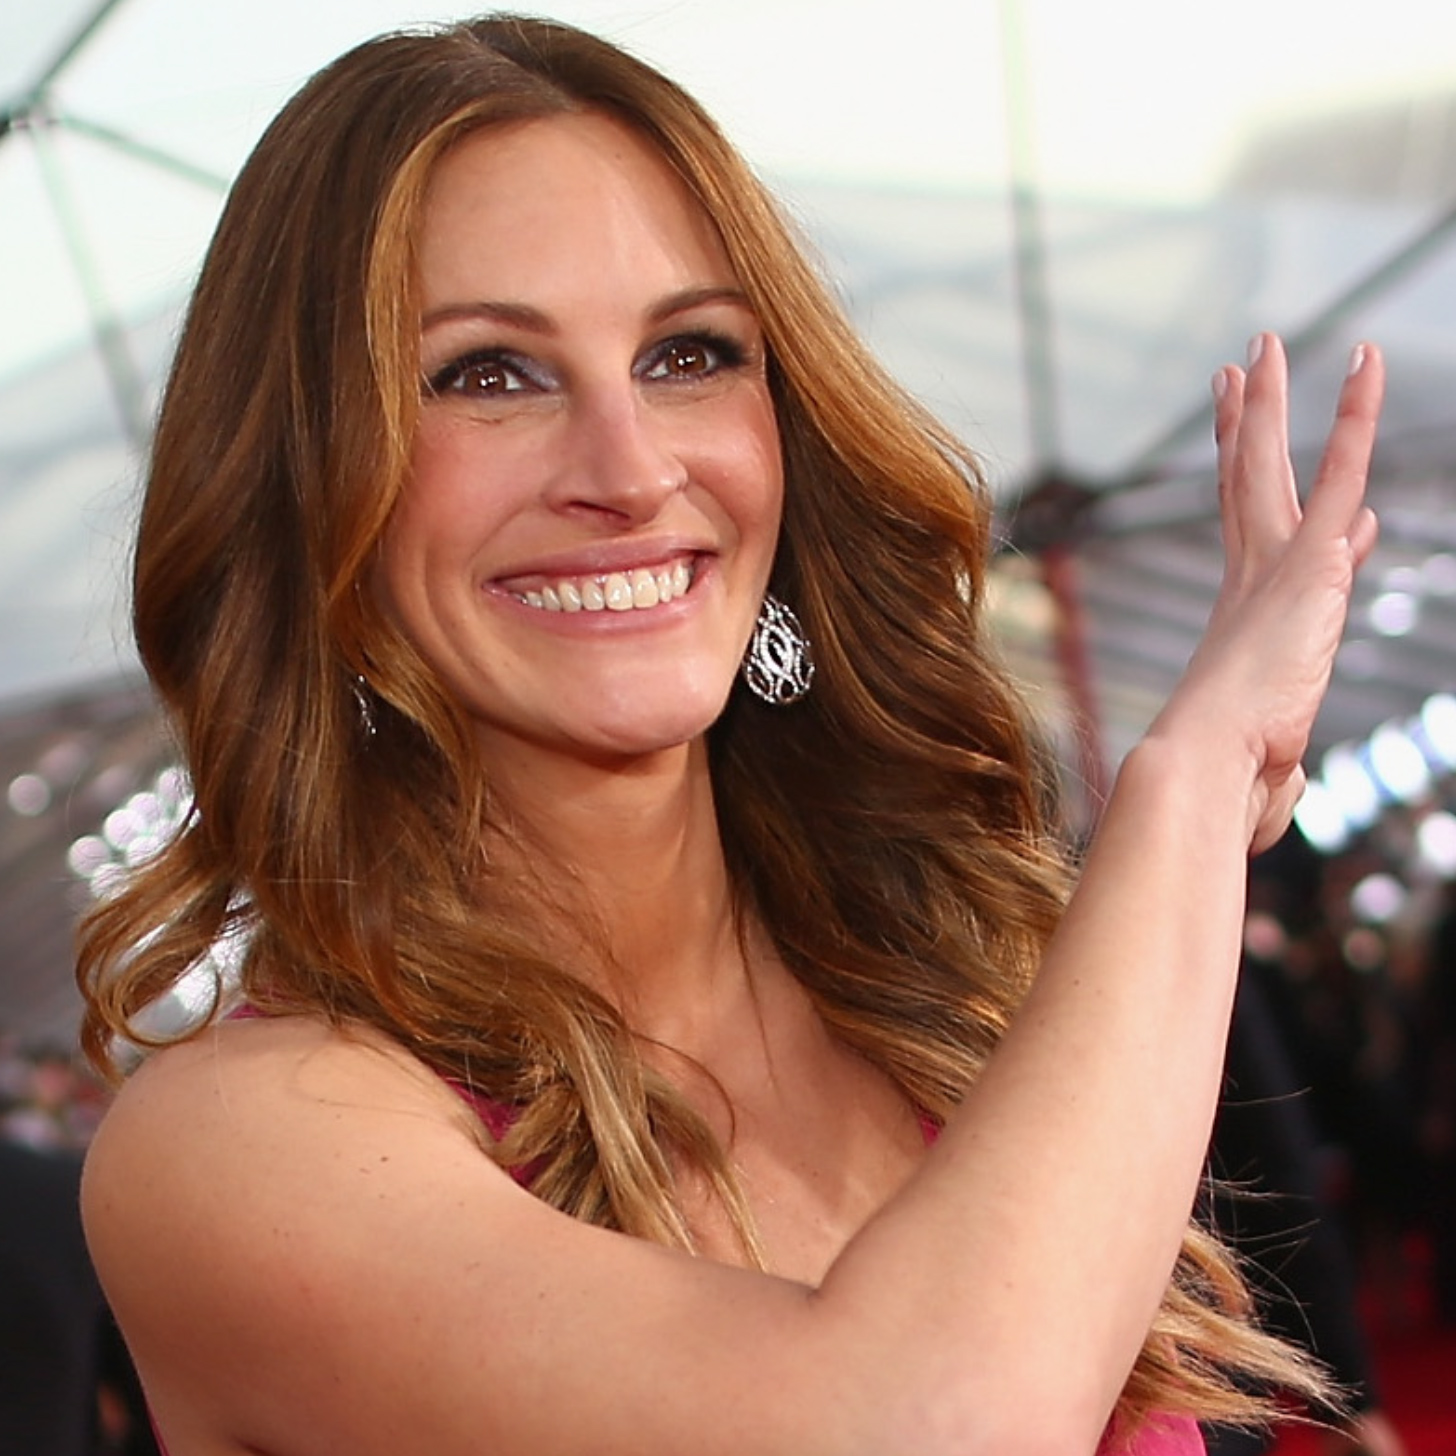 [Obrazek: Oscars-Profile-Julia-Roberts-Video.jpg]